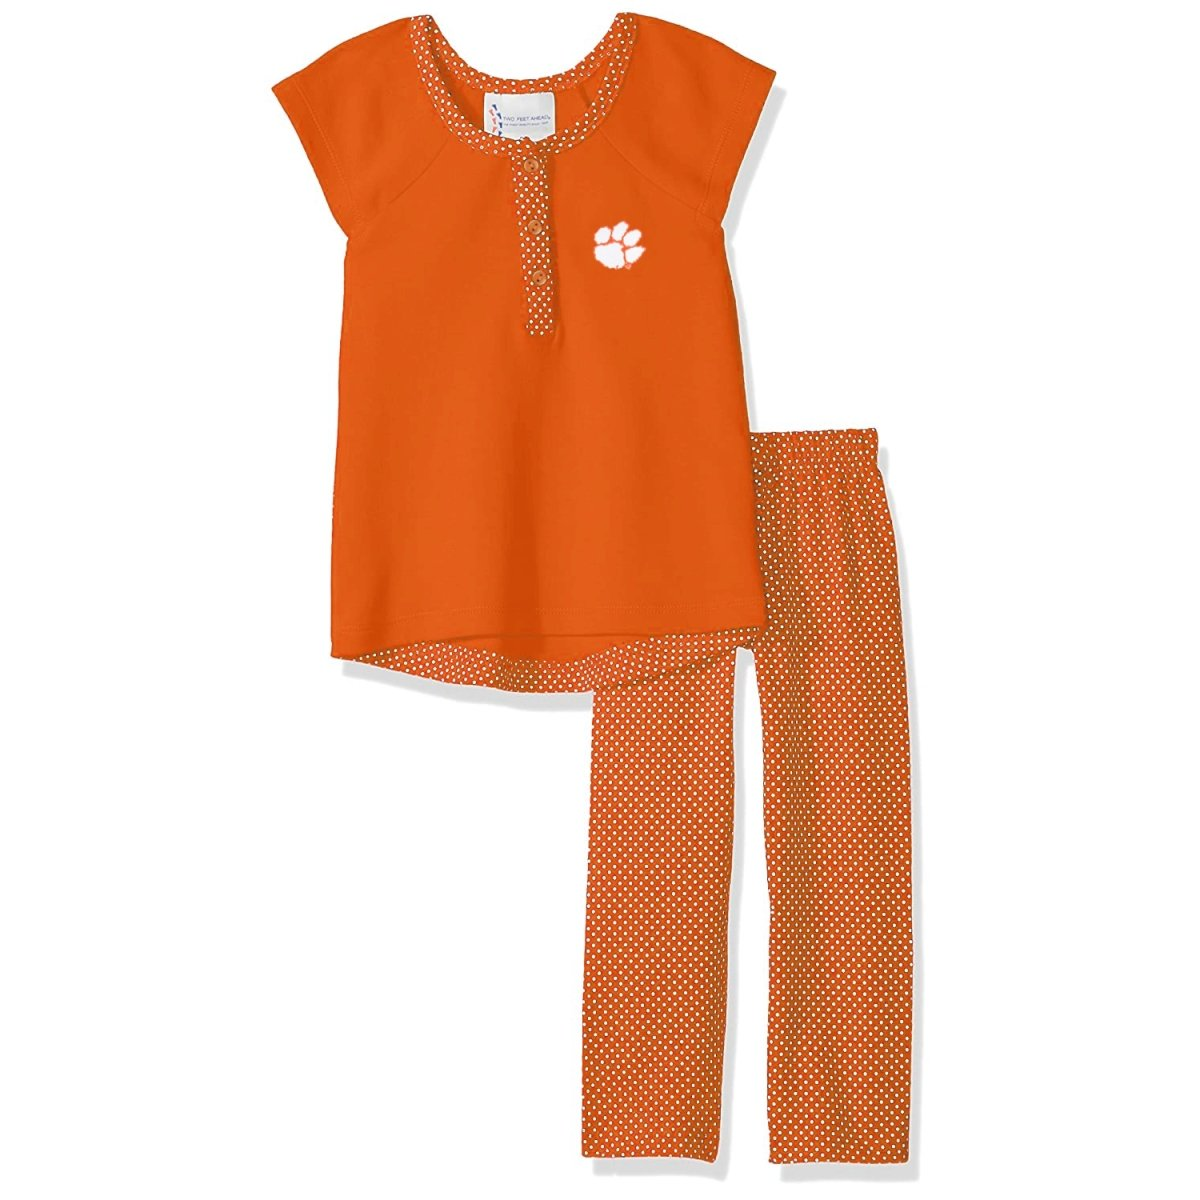 Toddler Pin Dot Shirt & Leggings Set - Mr. Knickerbocker